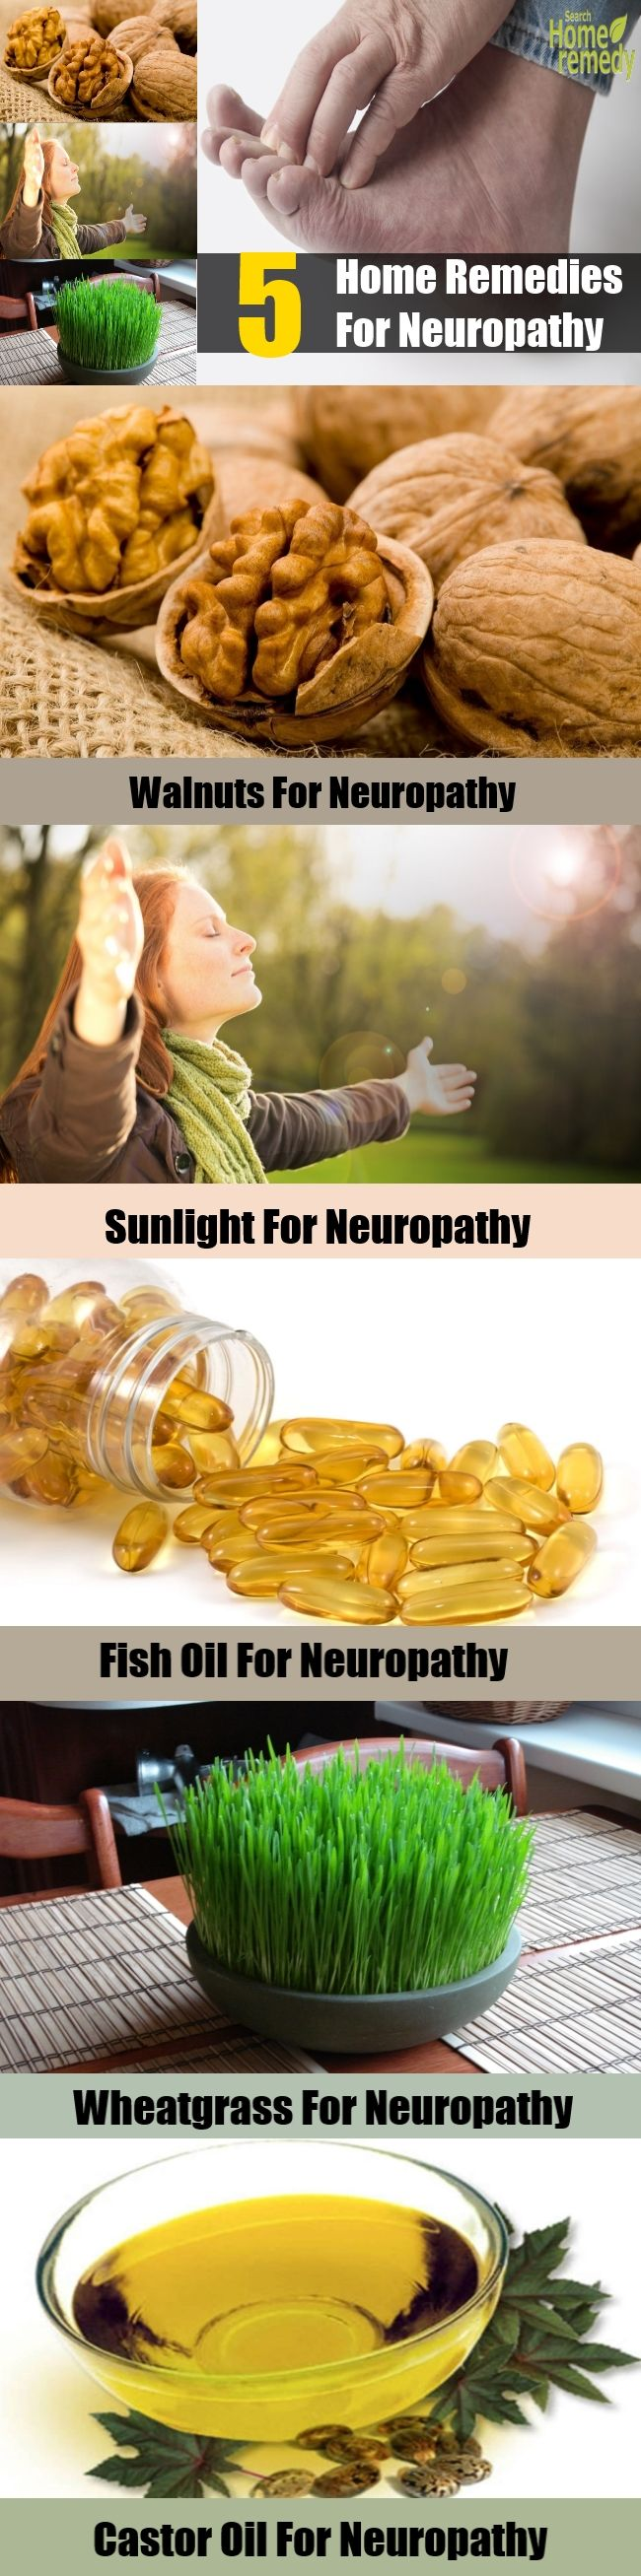 5 Effective Home Remedies For Neuropathy | healthybuzzer.com